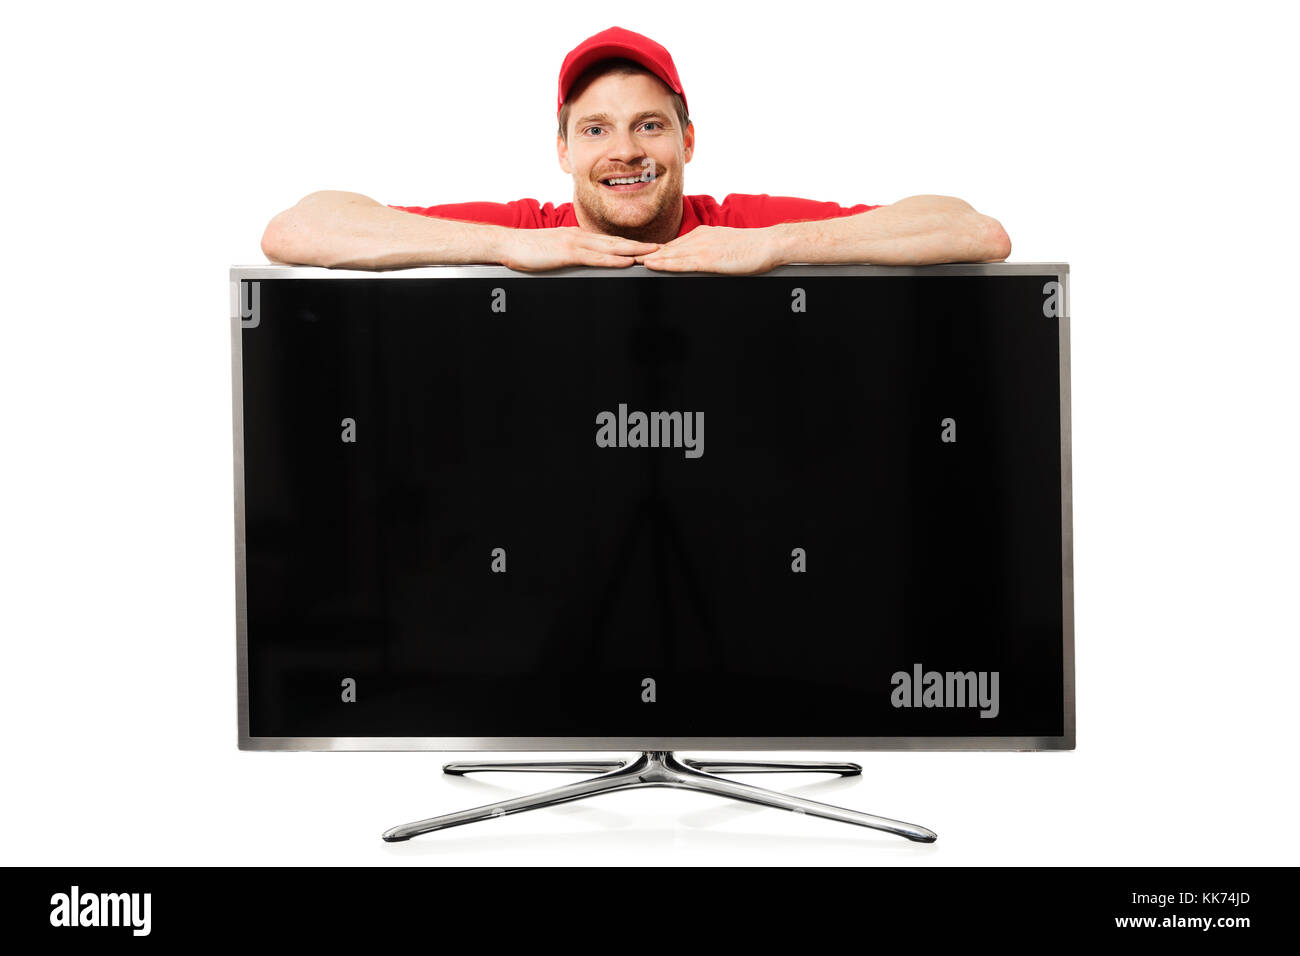 smiling salesman in red uniform over big blank tv screen isolated on white background - Stock Image